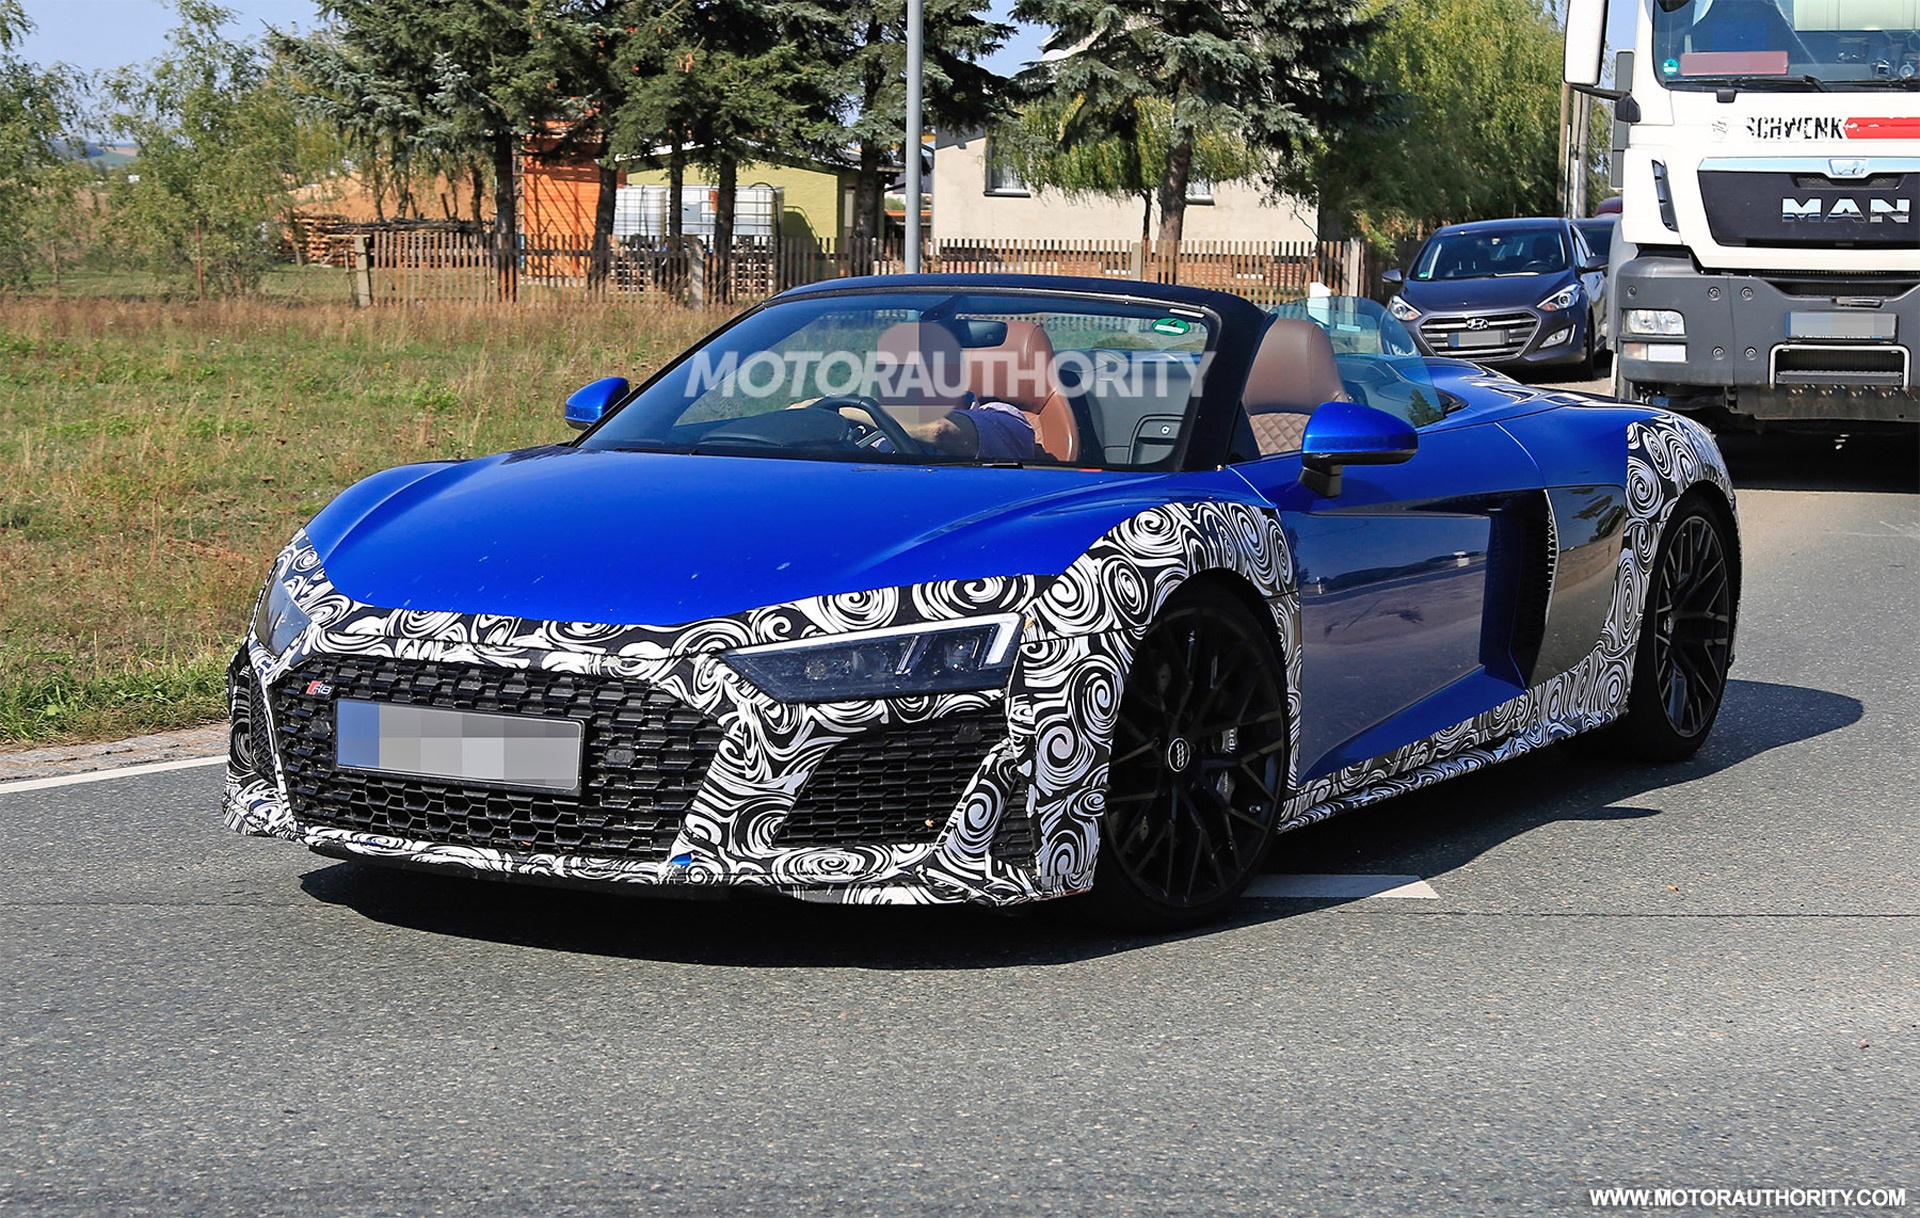 53 New 2020 Audi R8 E Tron Release Date and Concept